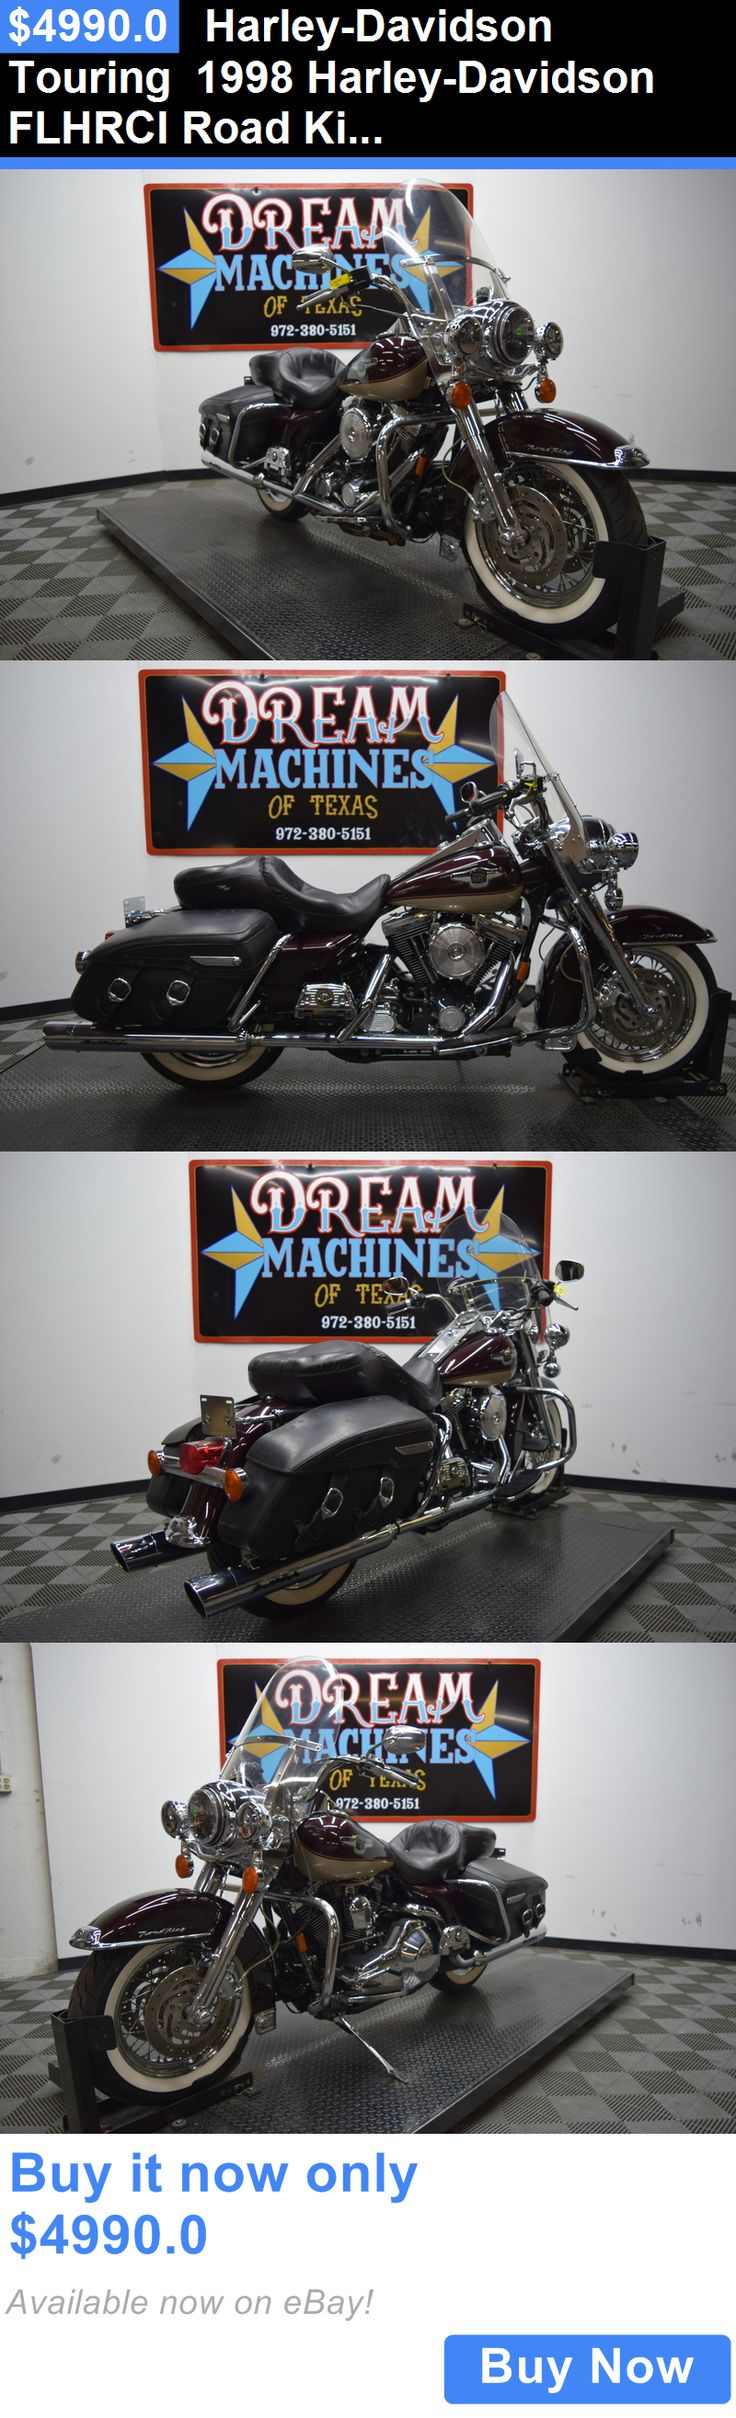 Motorcycles harley davidson touring 1998 harley davidson flhrci road king classic 95th anniversary